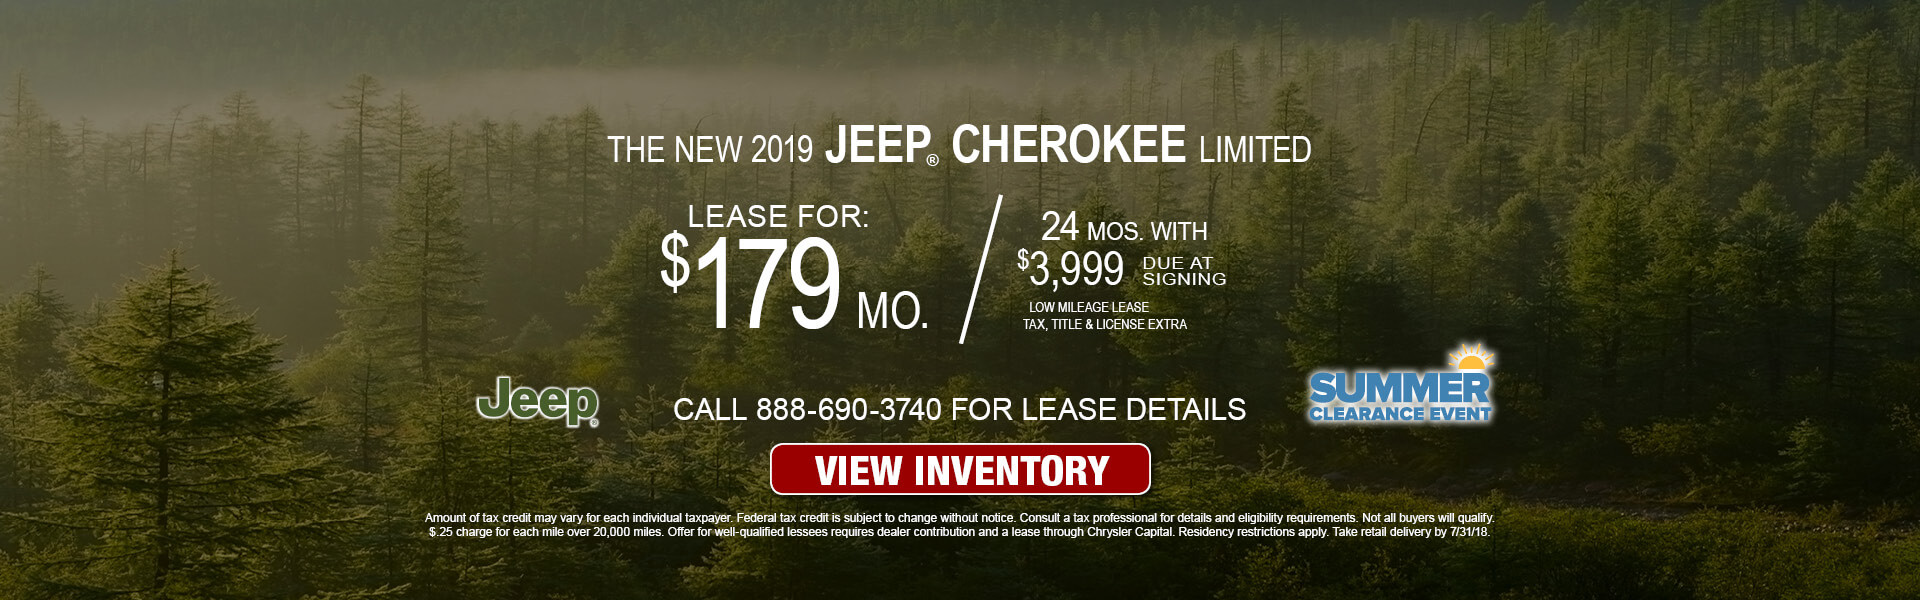 Jeep Cherokee Limited $179 Lease